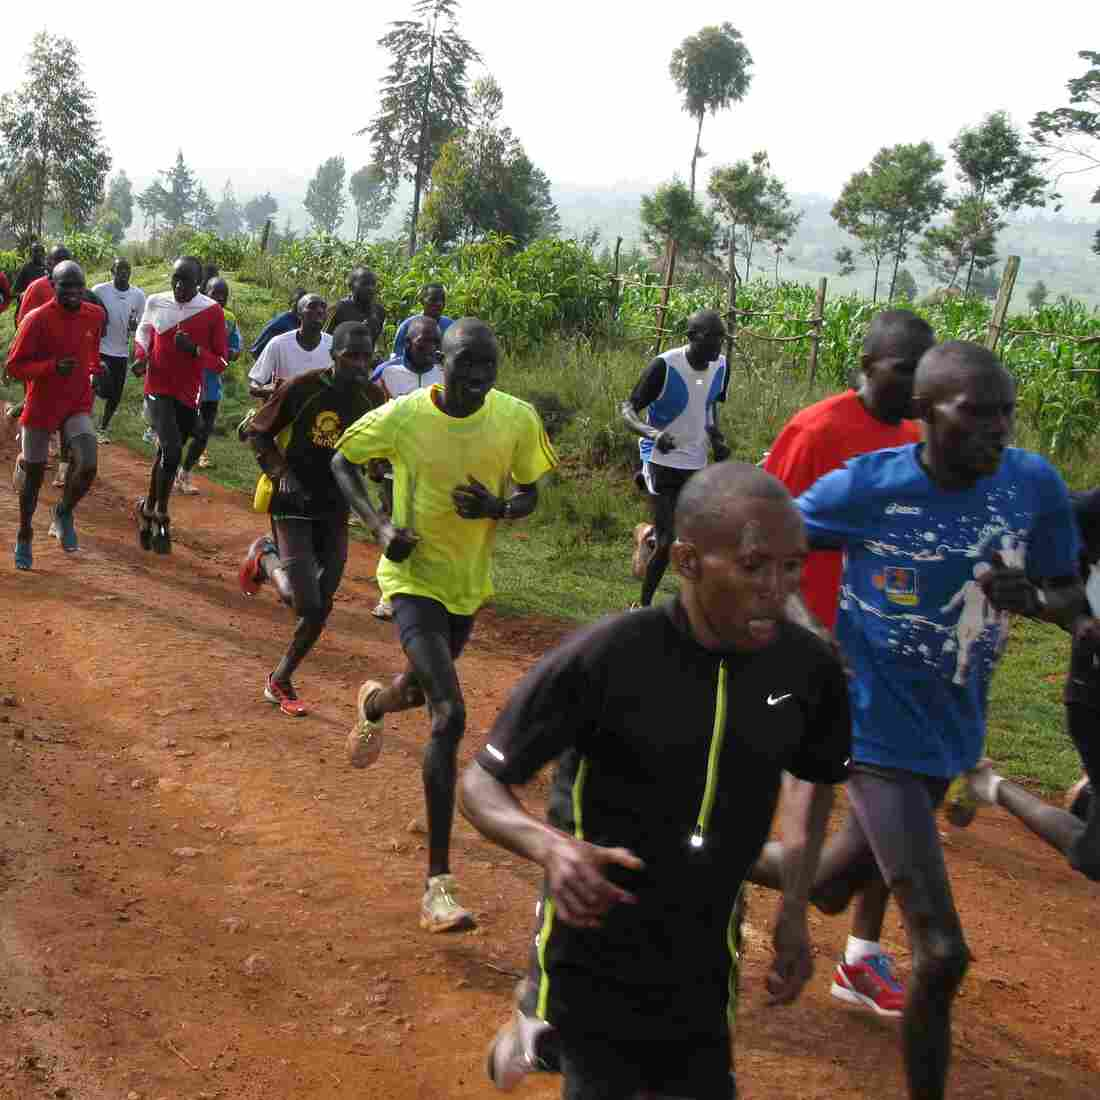 On The Road To Olympic Gold, Kenyan Marathoners Fuel Up On Carbs